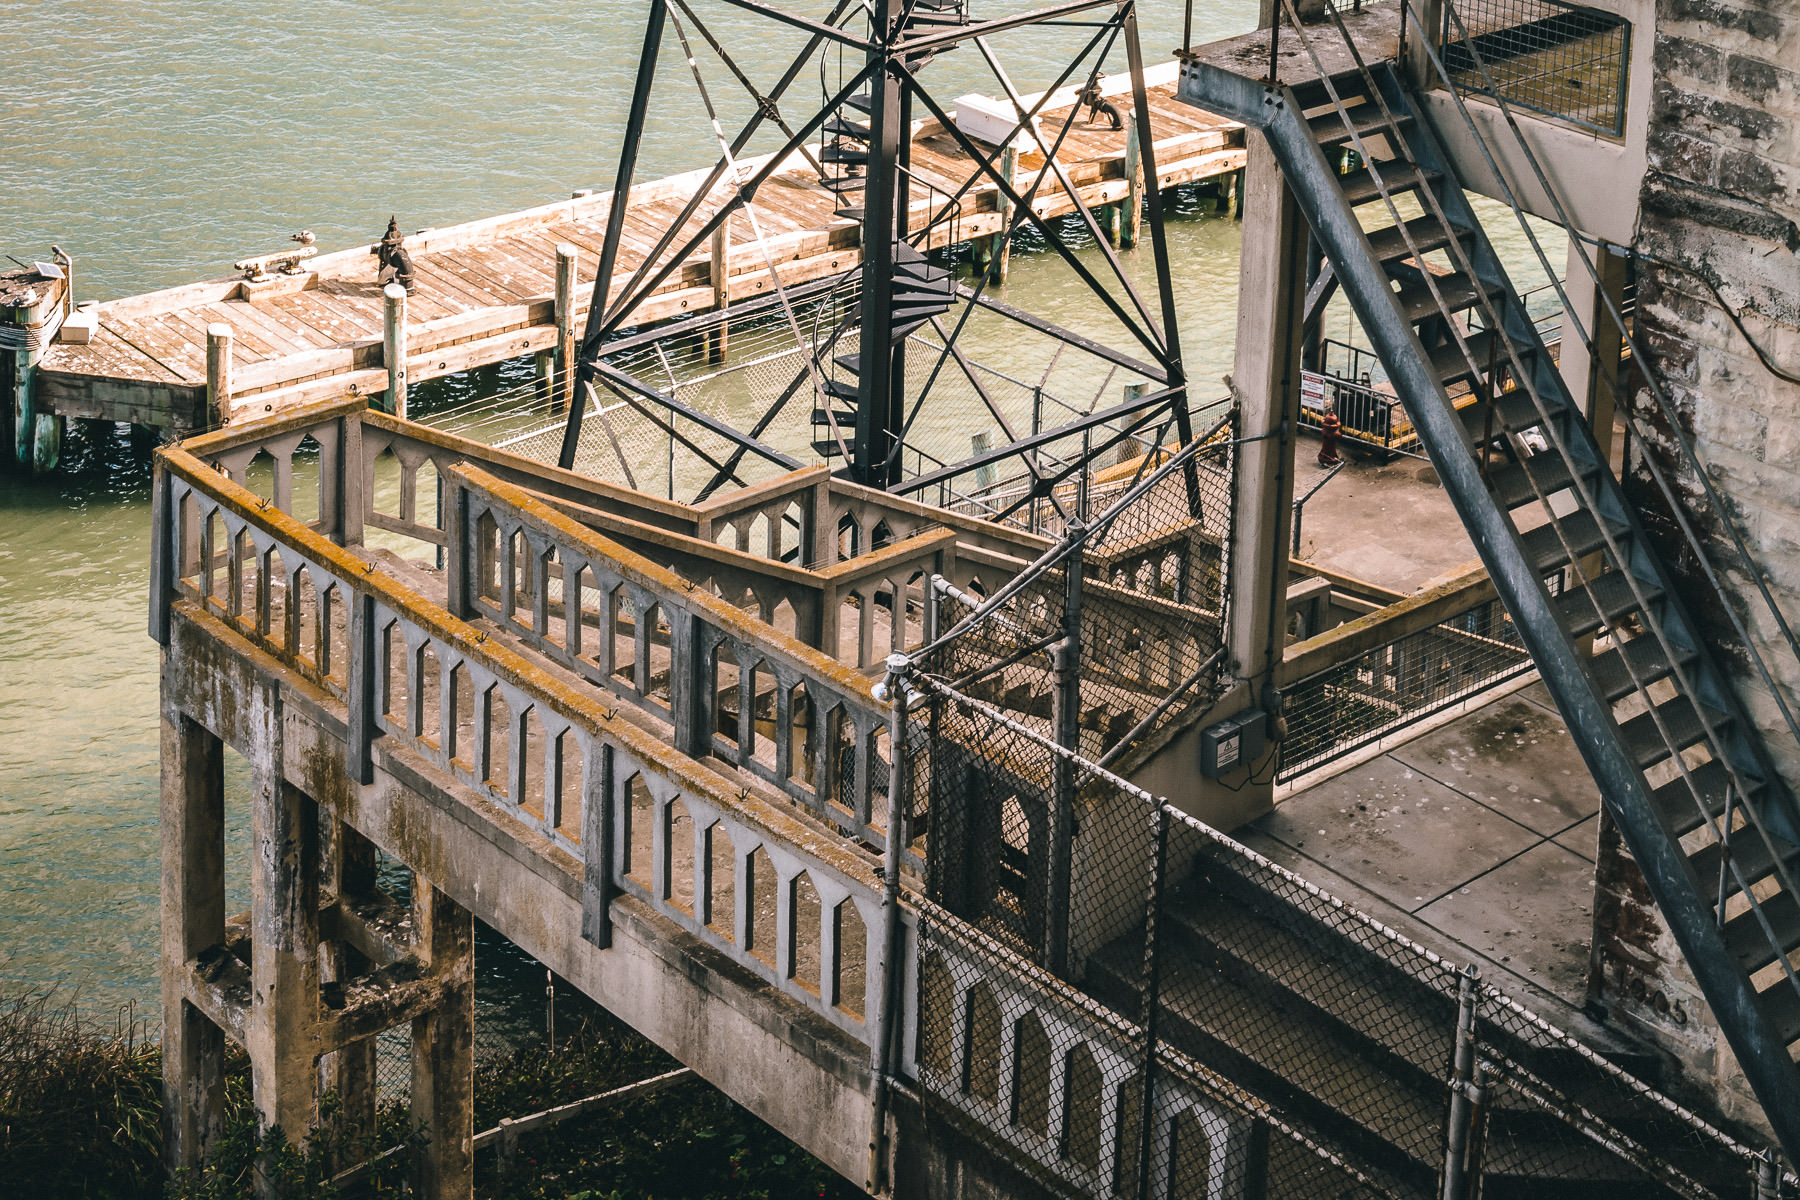 A conglomeration of stairways at Alcatraz Federal Penitentiary, San Francisco.